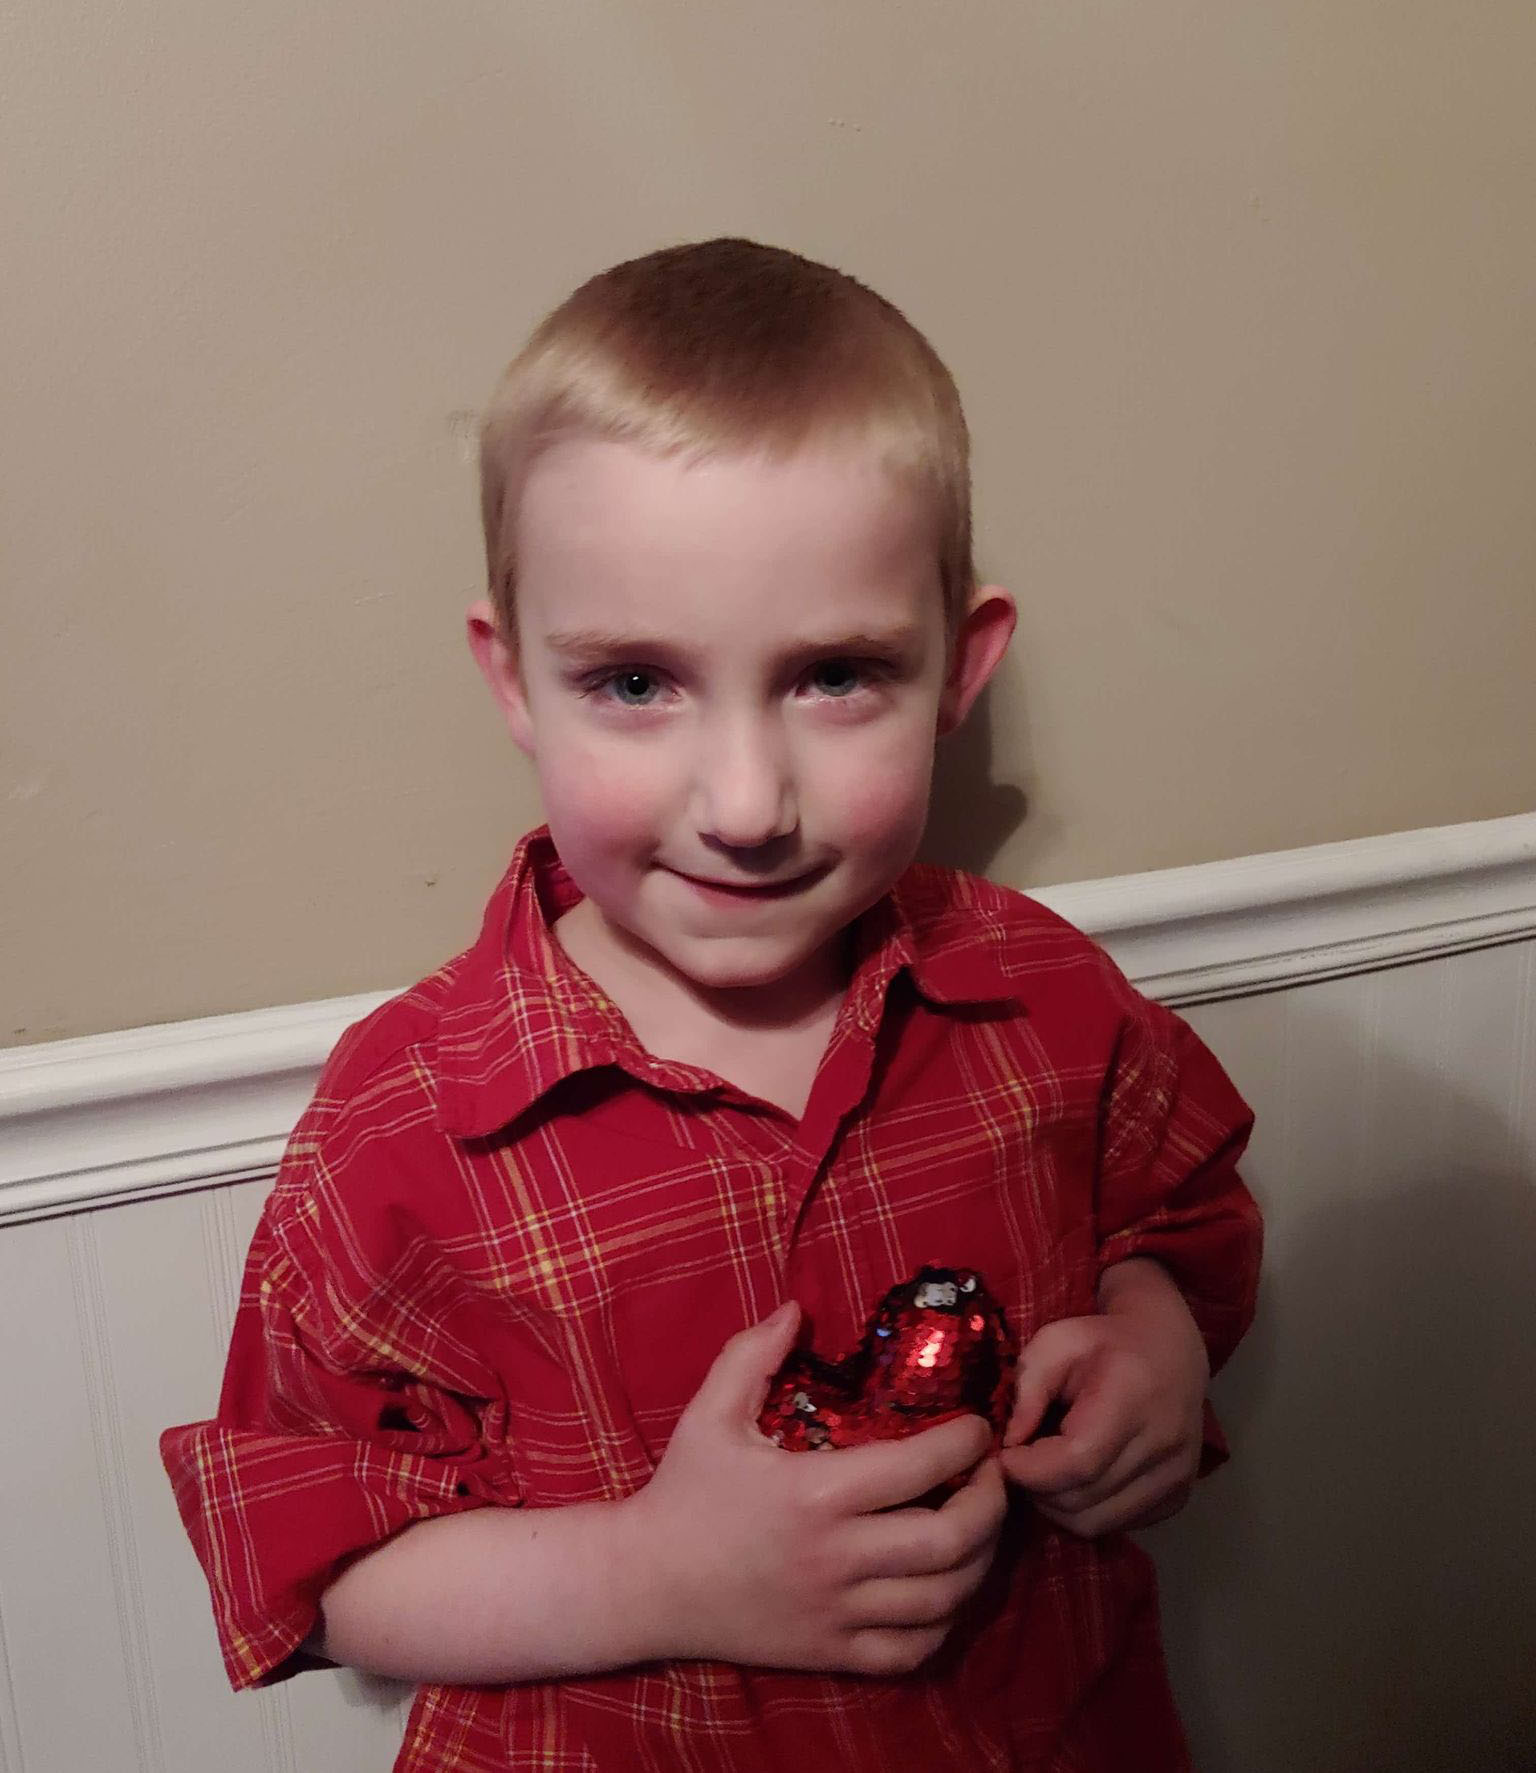 Kyler, a six-year-old Accra client, holding a balloon heart